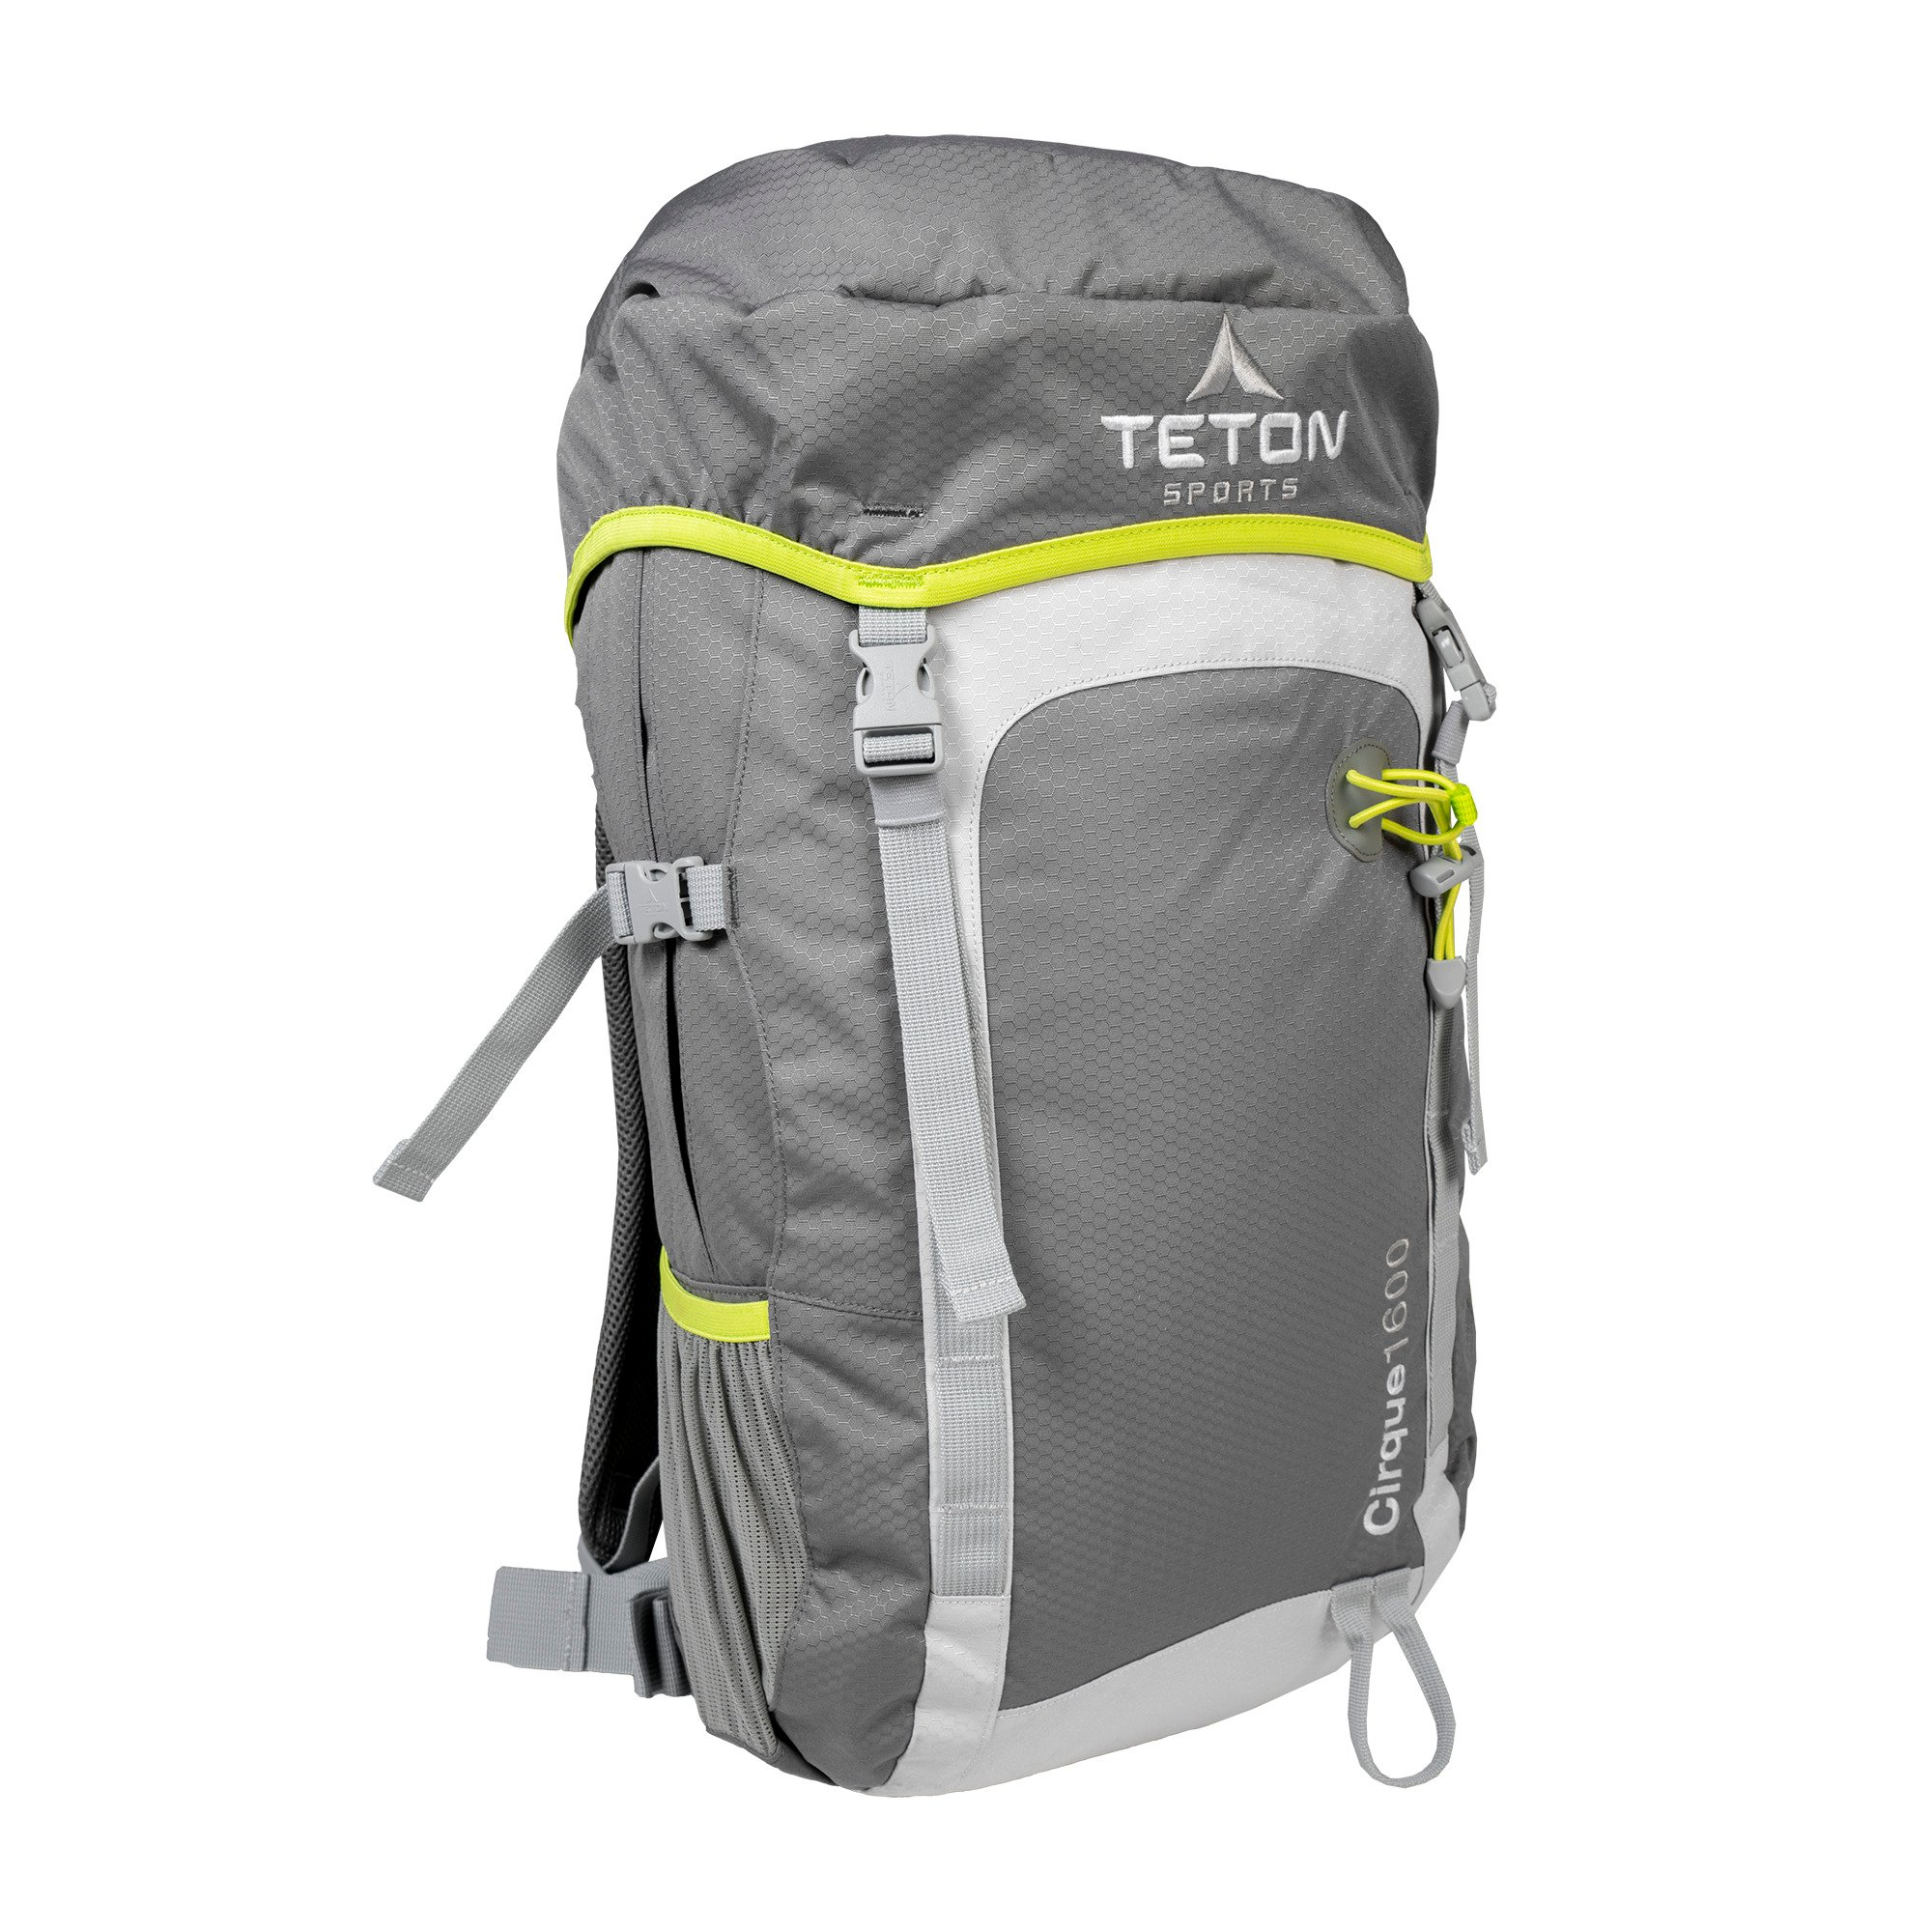 CIRQUE1600 BACKPACK